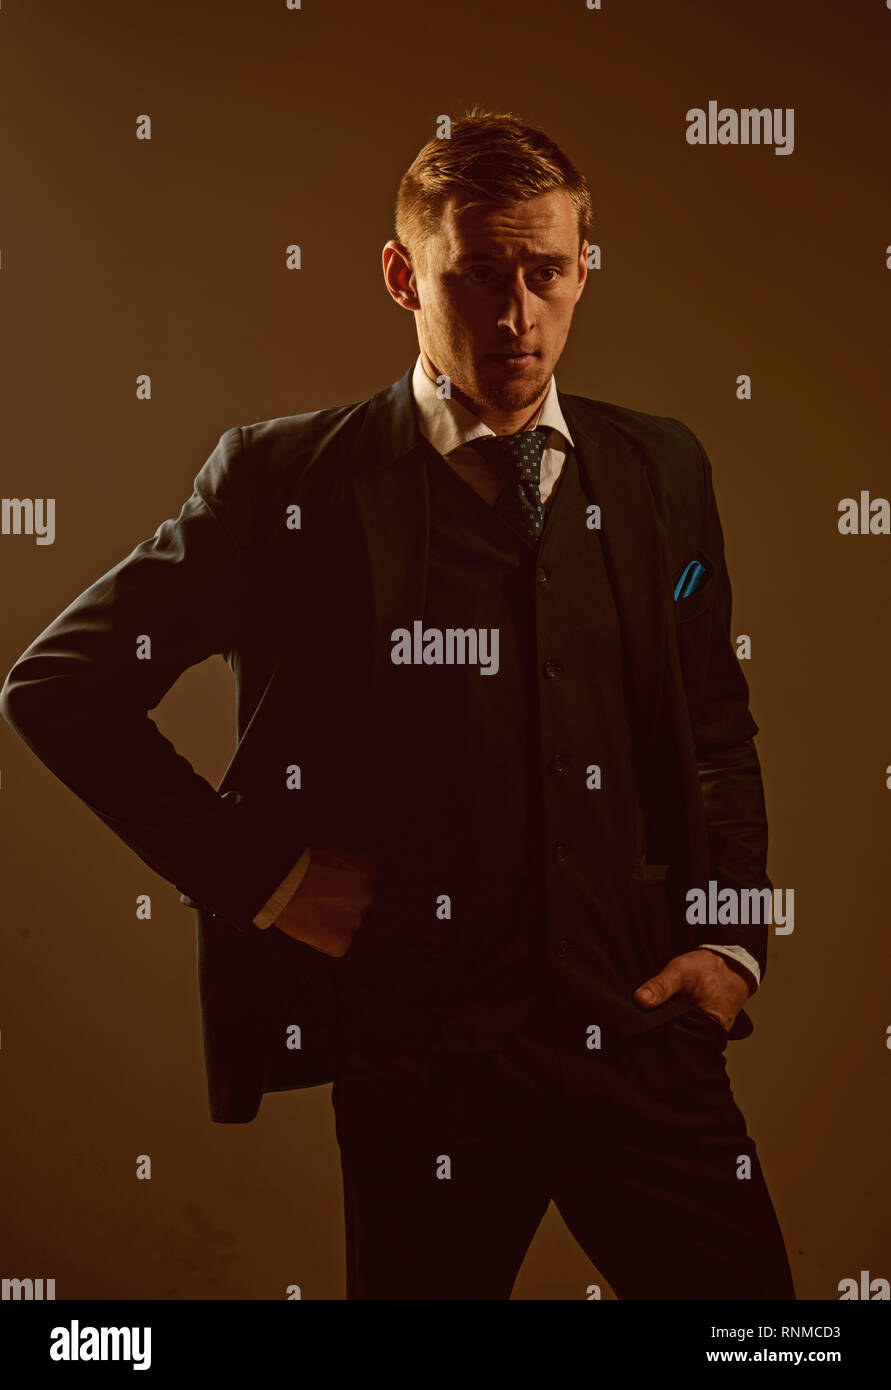 Manager concept. Office manager. Brand manager. Confident manager in formal suit. Classy in style - Stock Image